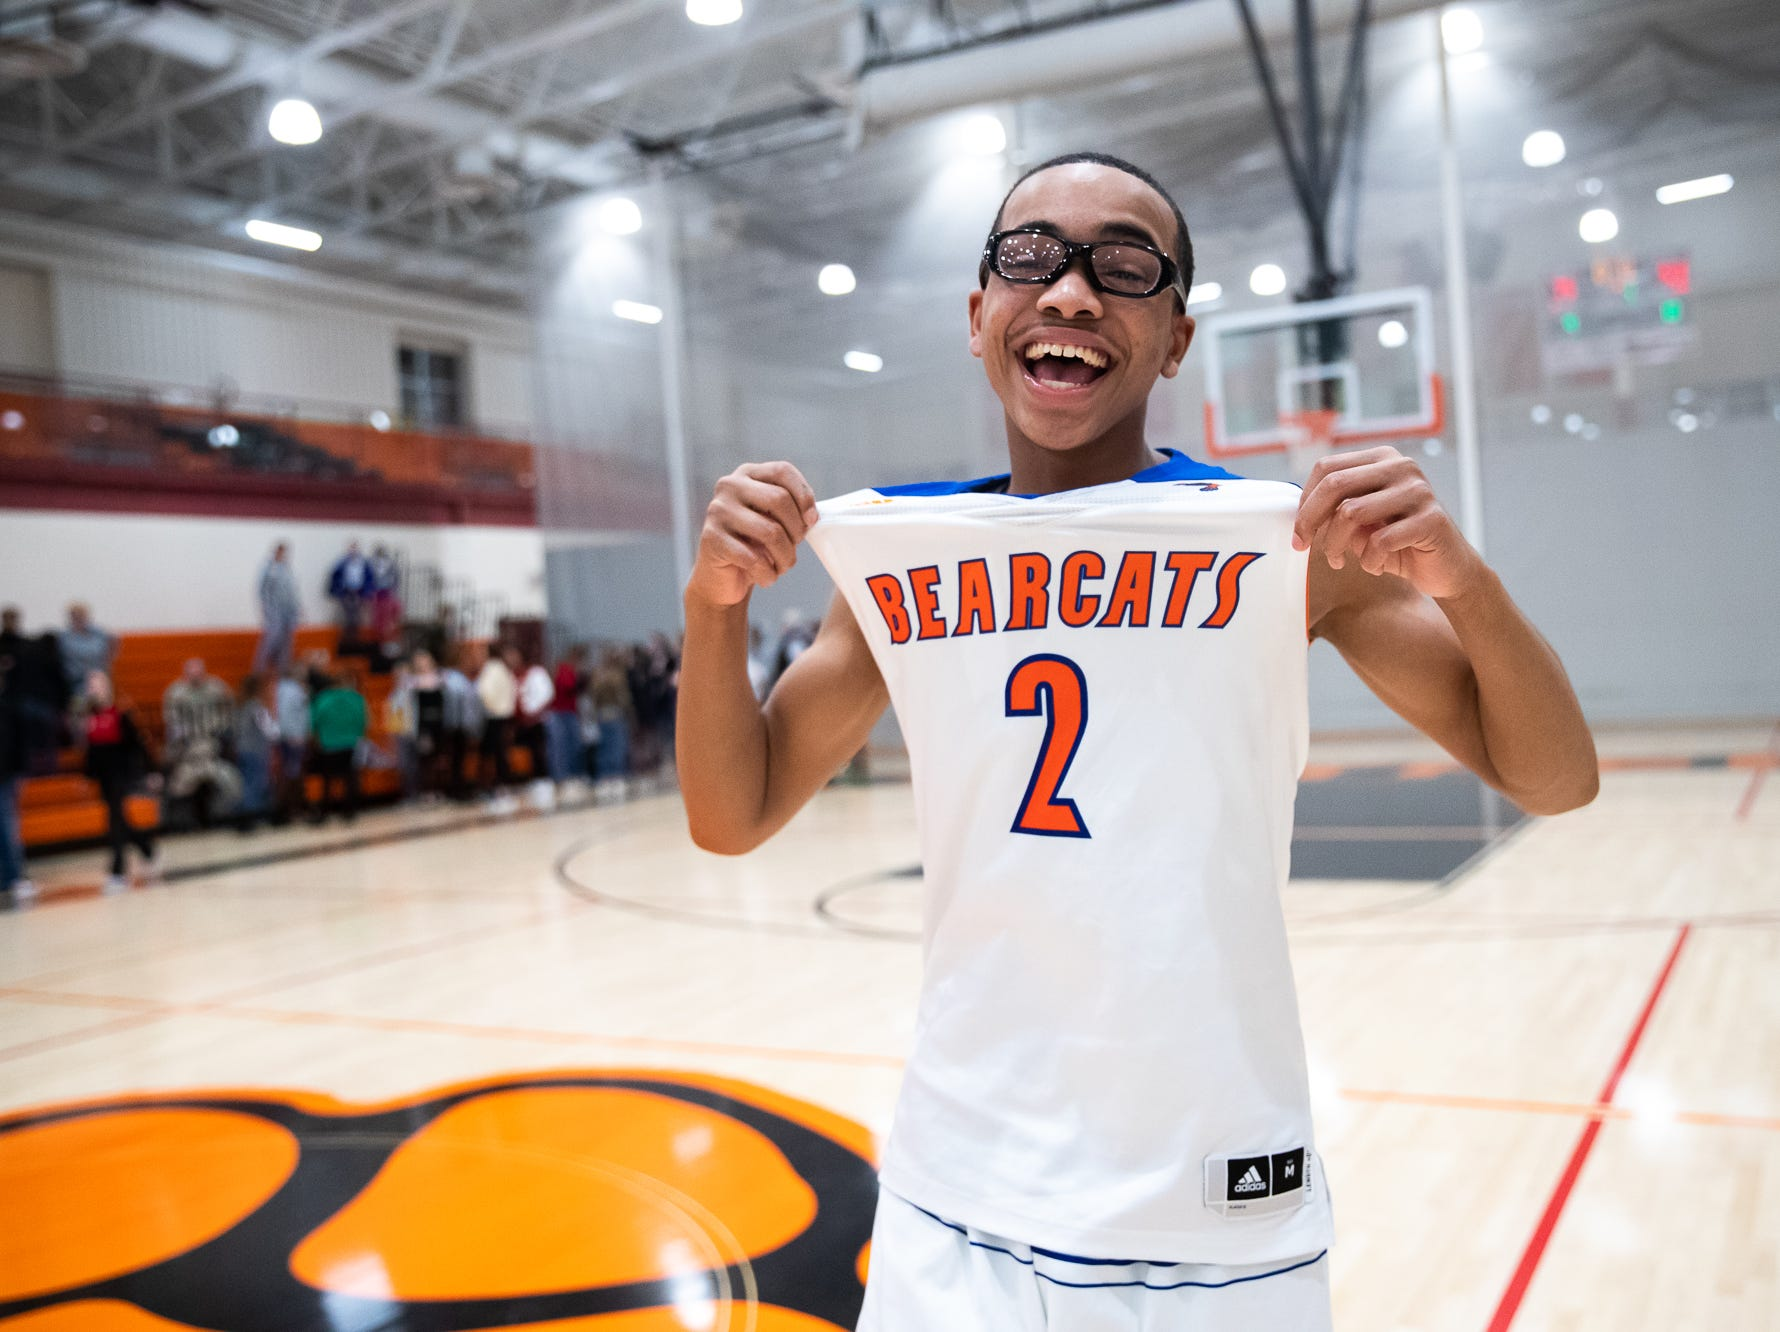 York High's Cameron Gallon (2) celebrates after winning his YAIAA quarterfinal against Dover, Saturday, Feb. 9, 2019, at Central York High School. The York High Bearcats defeated the Dover Eagles 75-53.